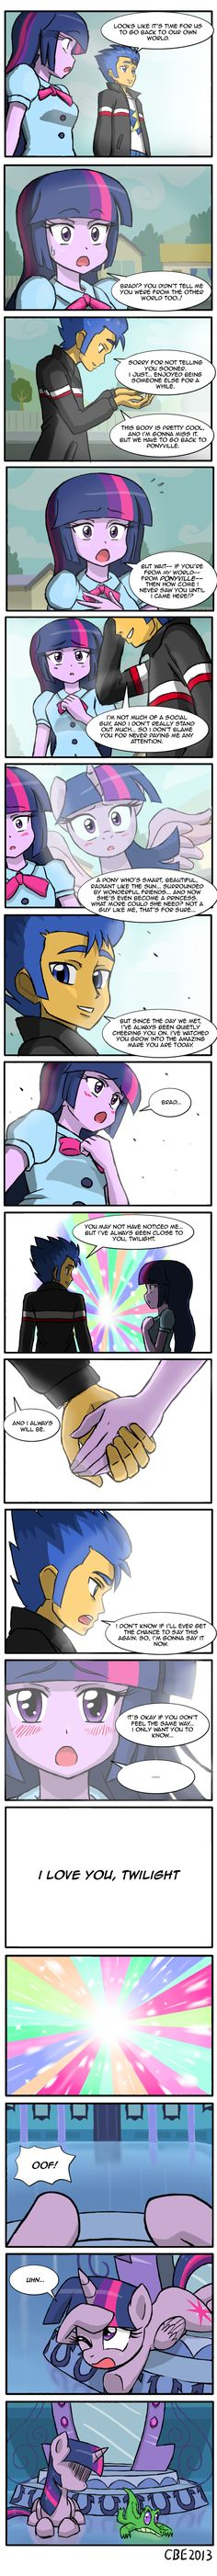 Equestria Girls Ending Scene by *CrimsonBugEye on deviantART OMG I died!  Best comic ever